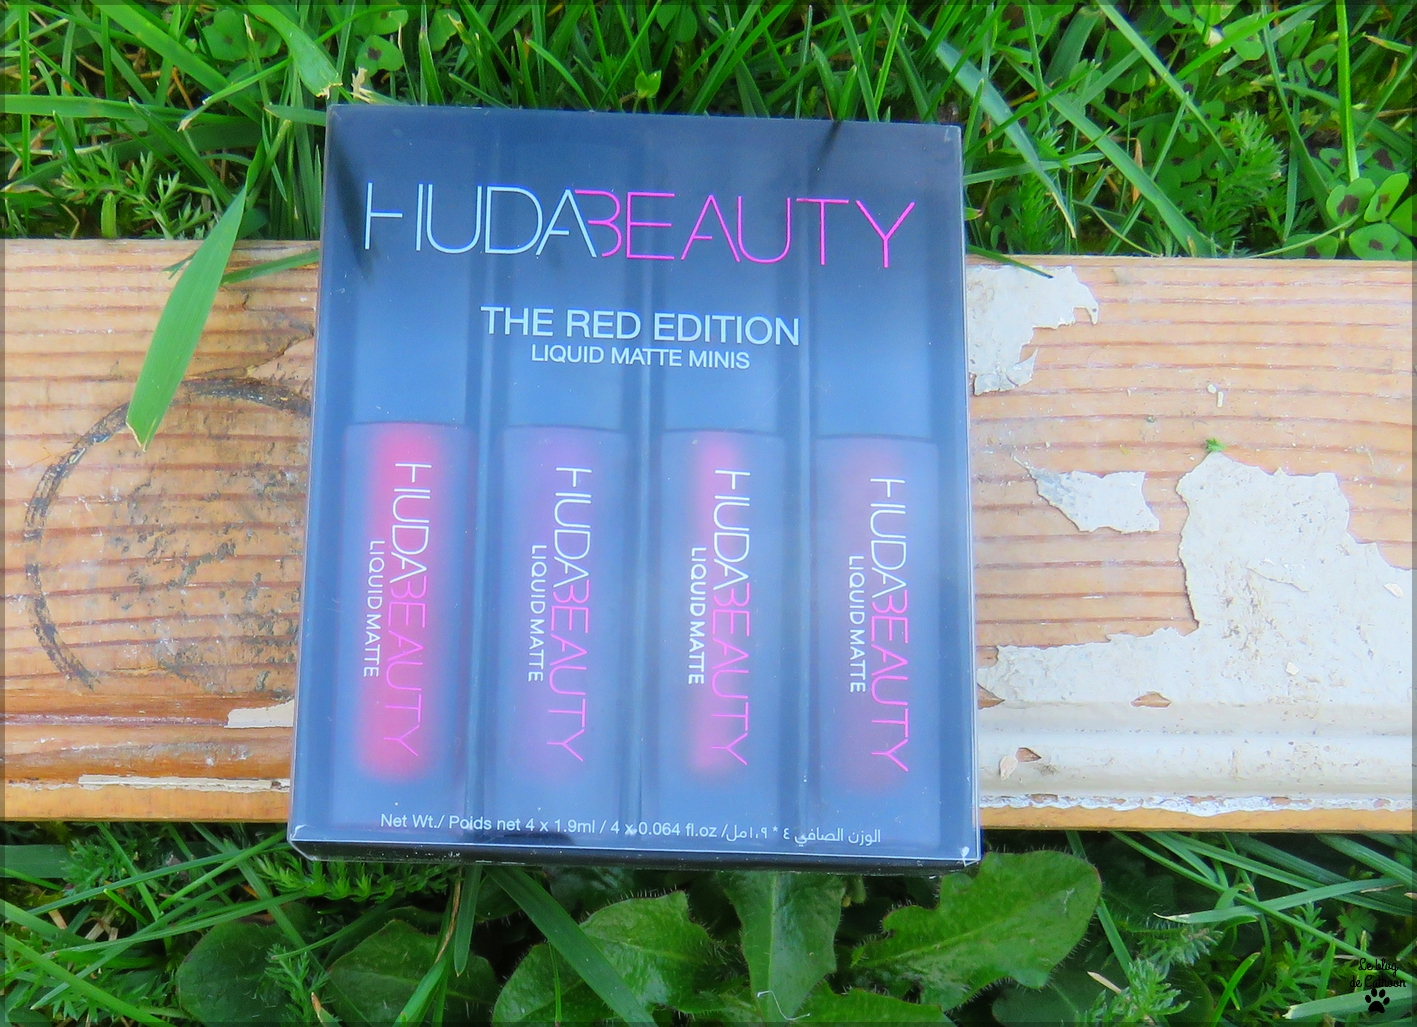 The Red Edition - Liquid Matte Minis - Huda Beauty